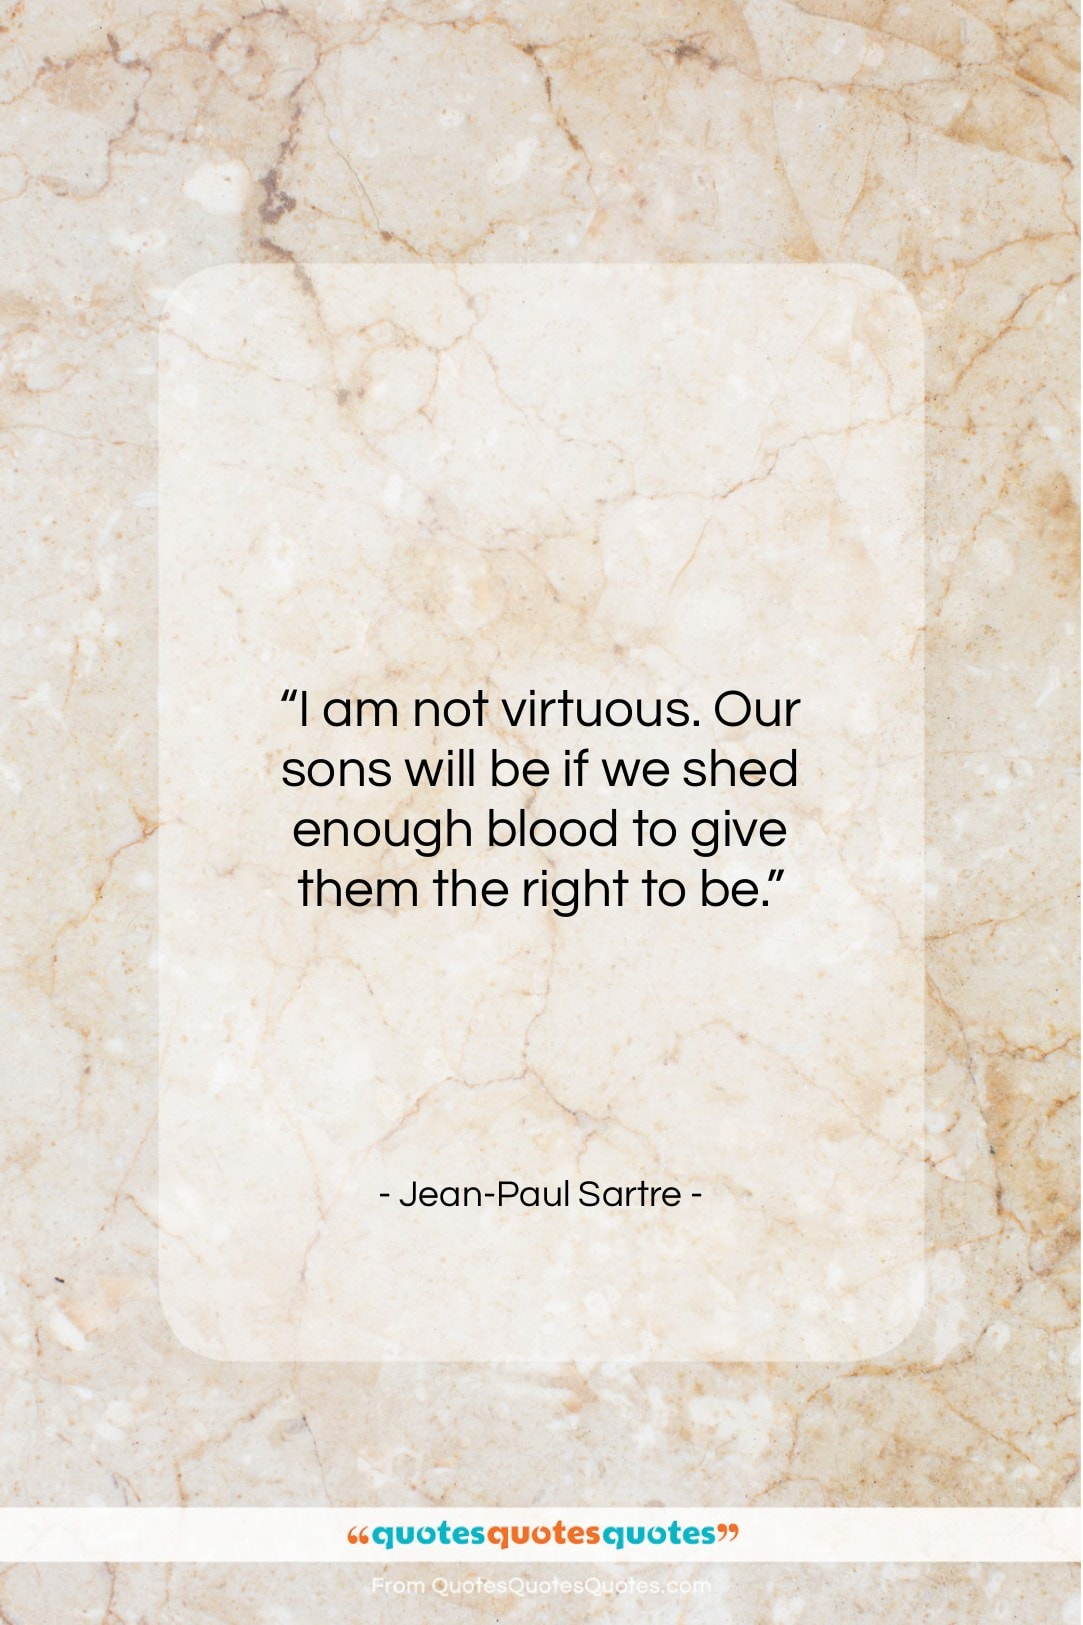 """Jean-Paul Sartre quote: """"I am not virtuous. Our sons will…""""- at QuotesQuotesQuotes.com"""